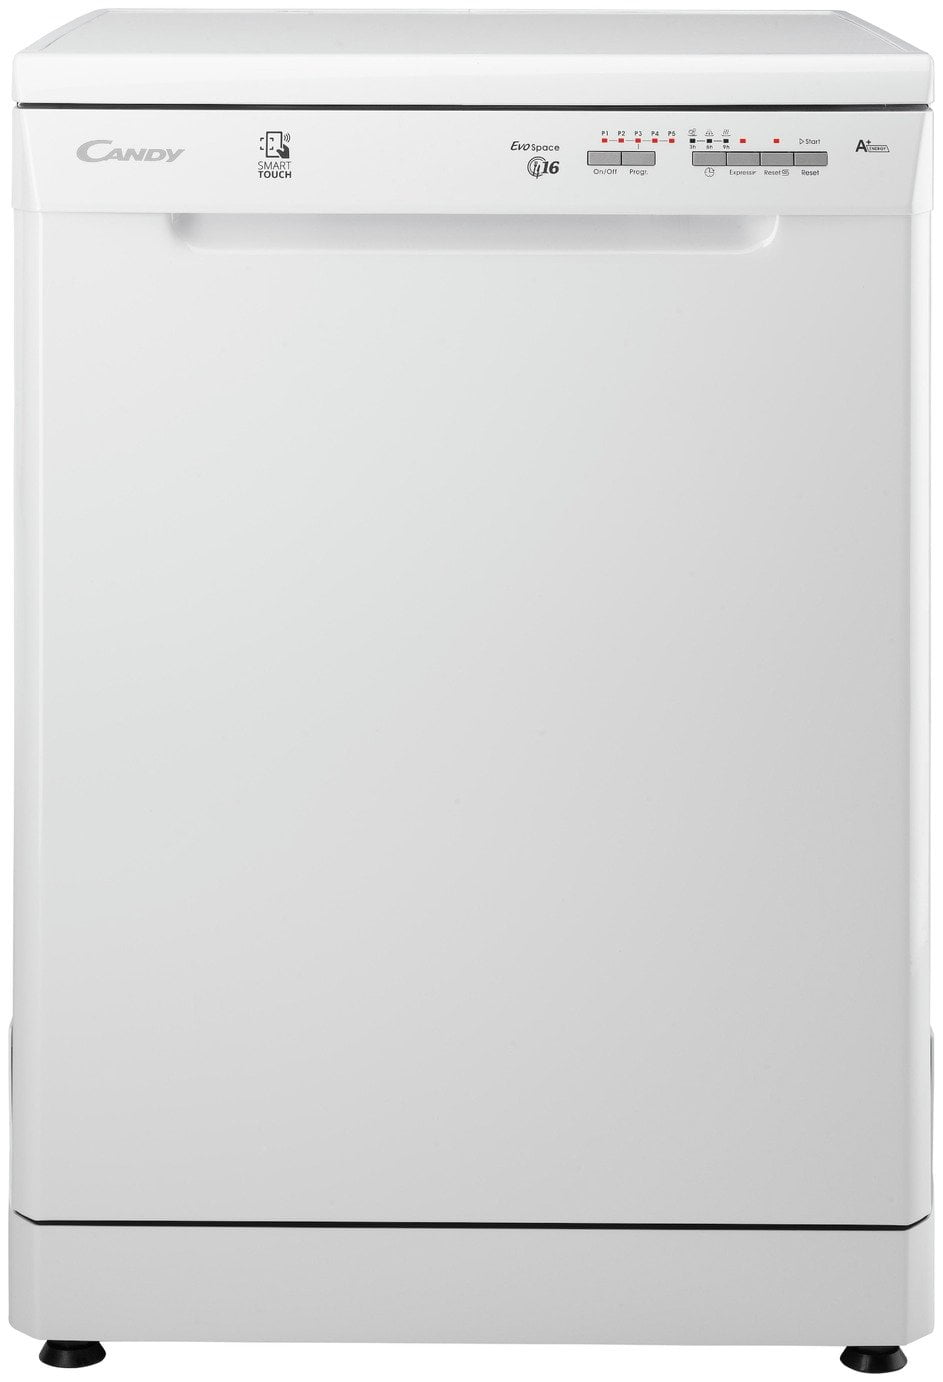 Candy CDPN 1L670SW 16 Place Full Size Dishwasher - White